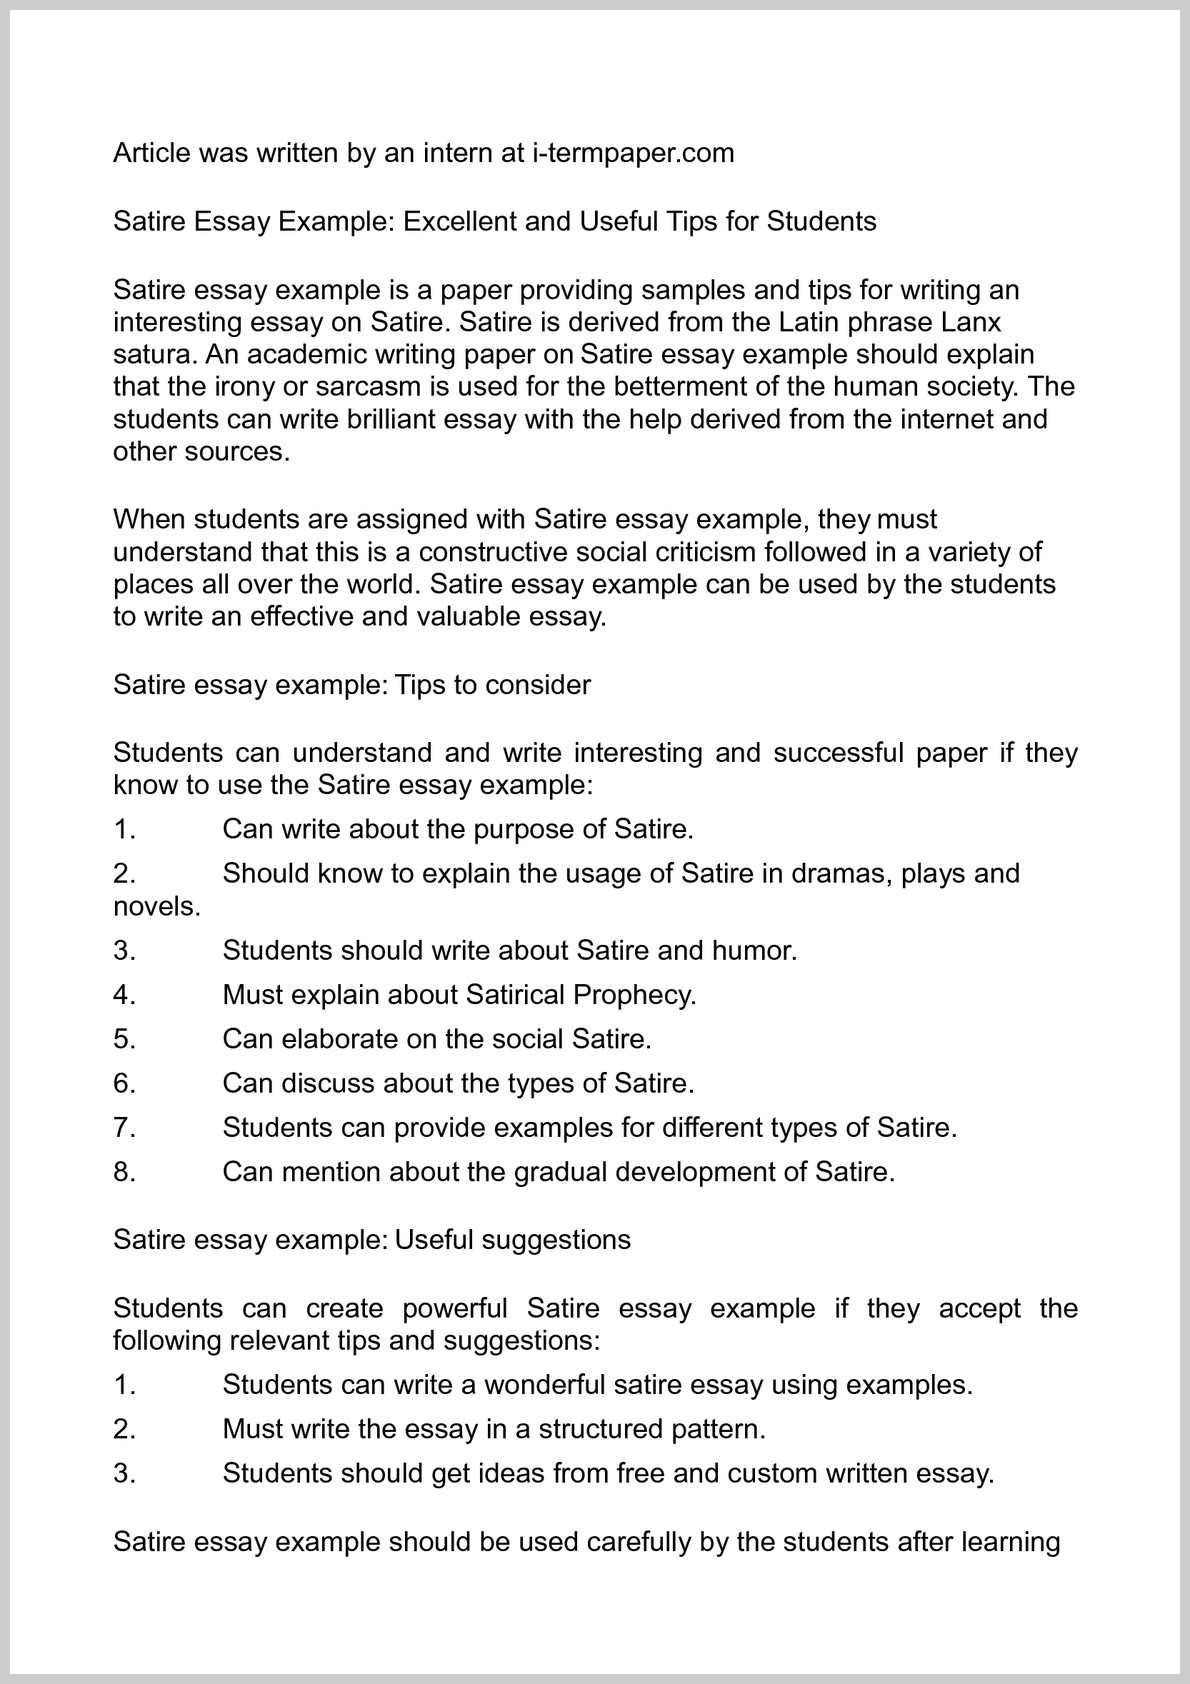 014 Essay Satiric Negative Impacts Of Social Media The Best Writing Satirical Topics Frightening Satire On Obesity For College 111 Full